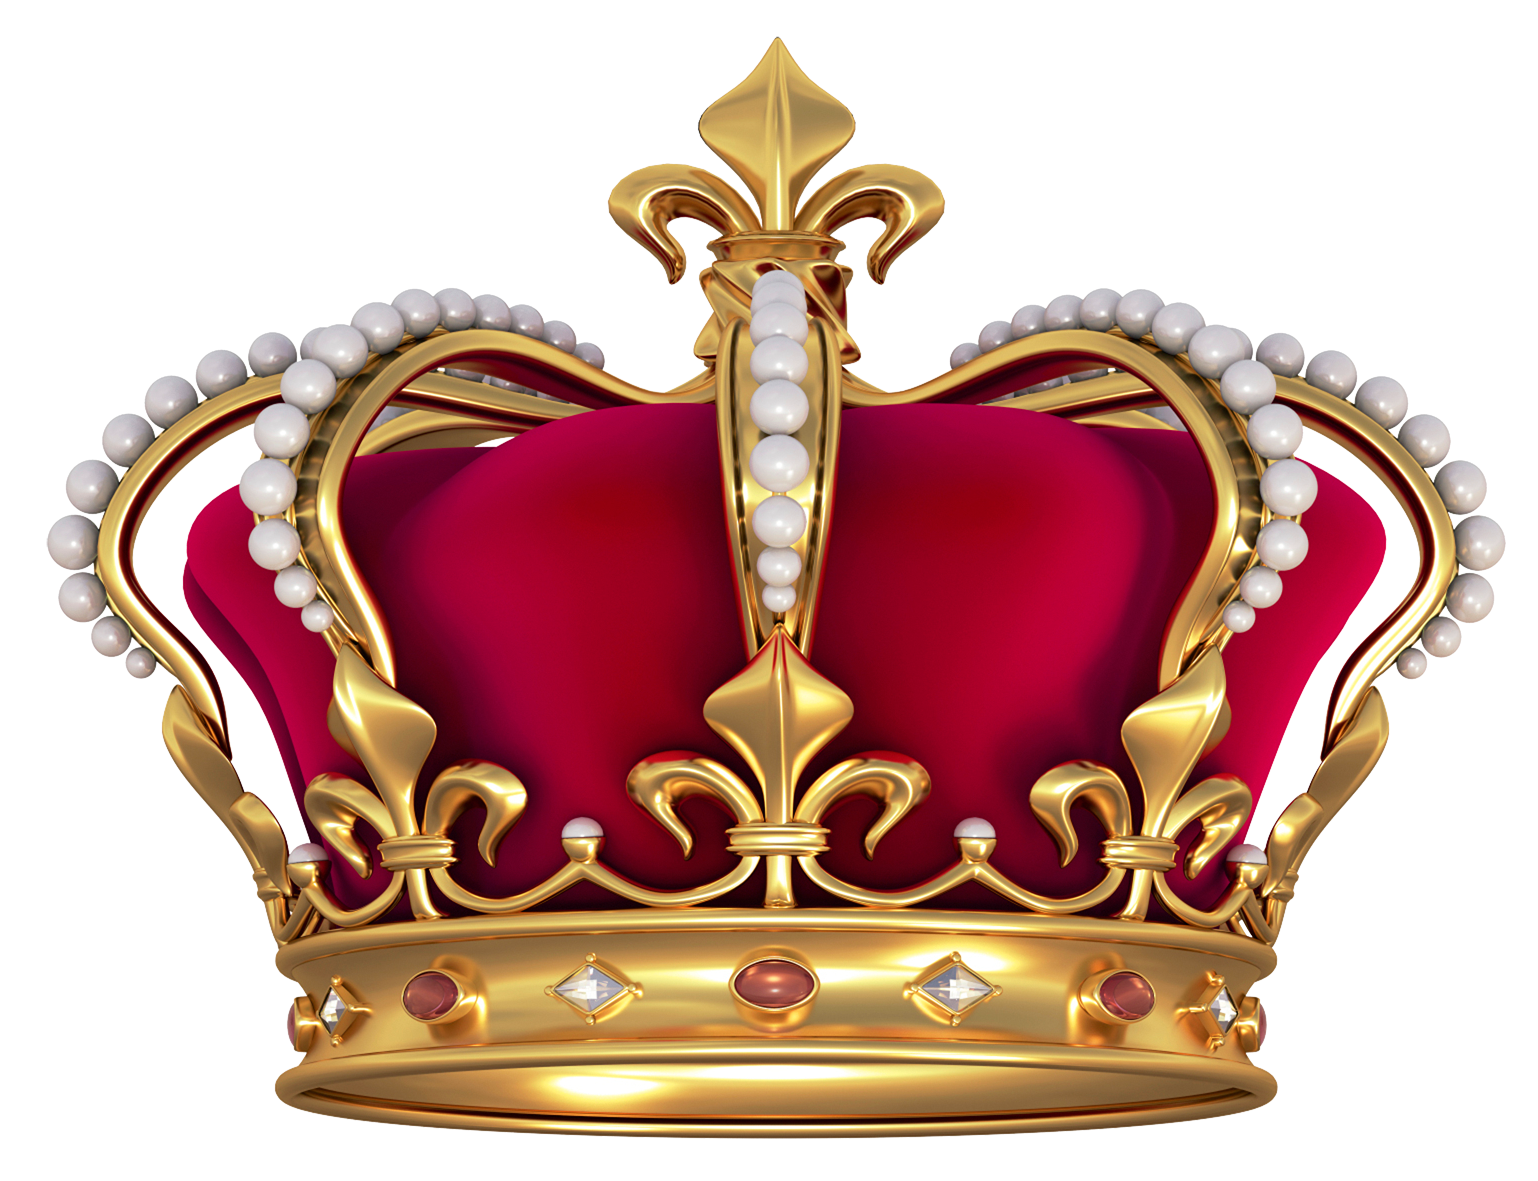 Red Gold Crown with Pearls PNG Clipart Picture | Crafting - Regal ... graphic royalty free download